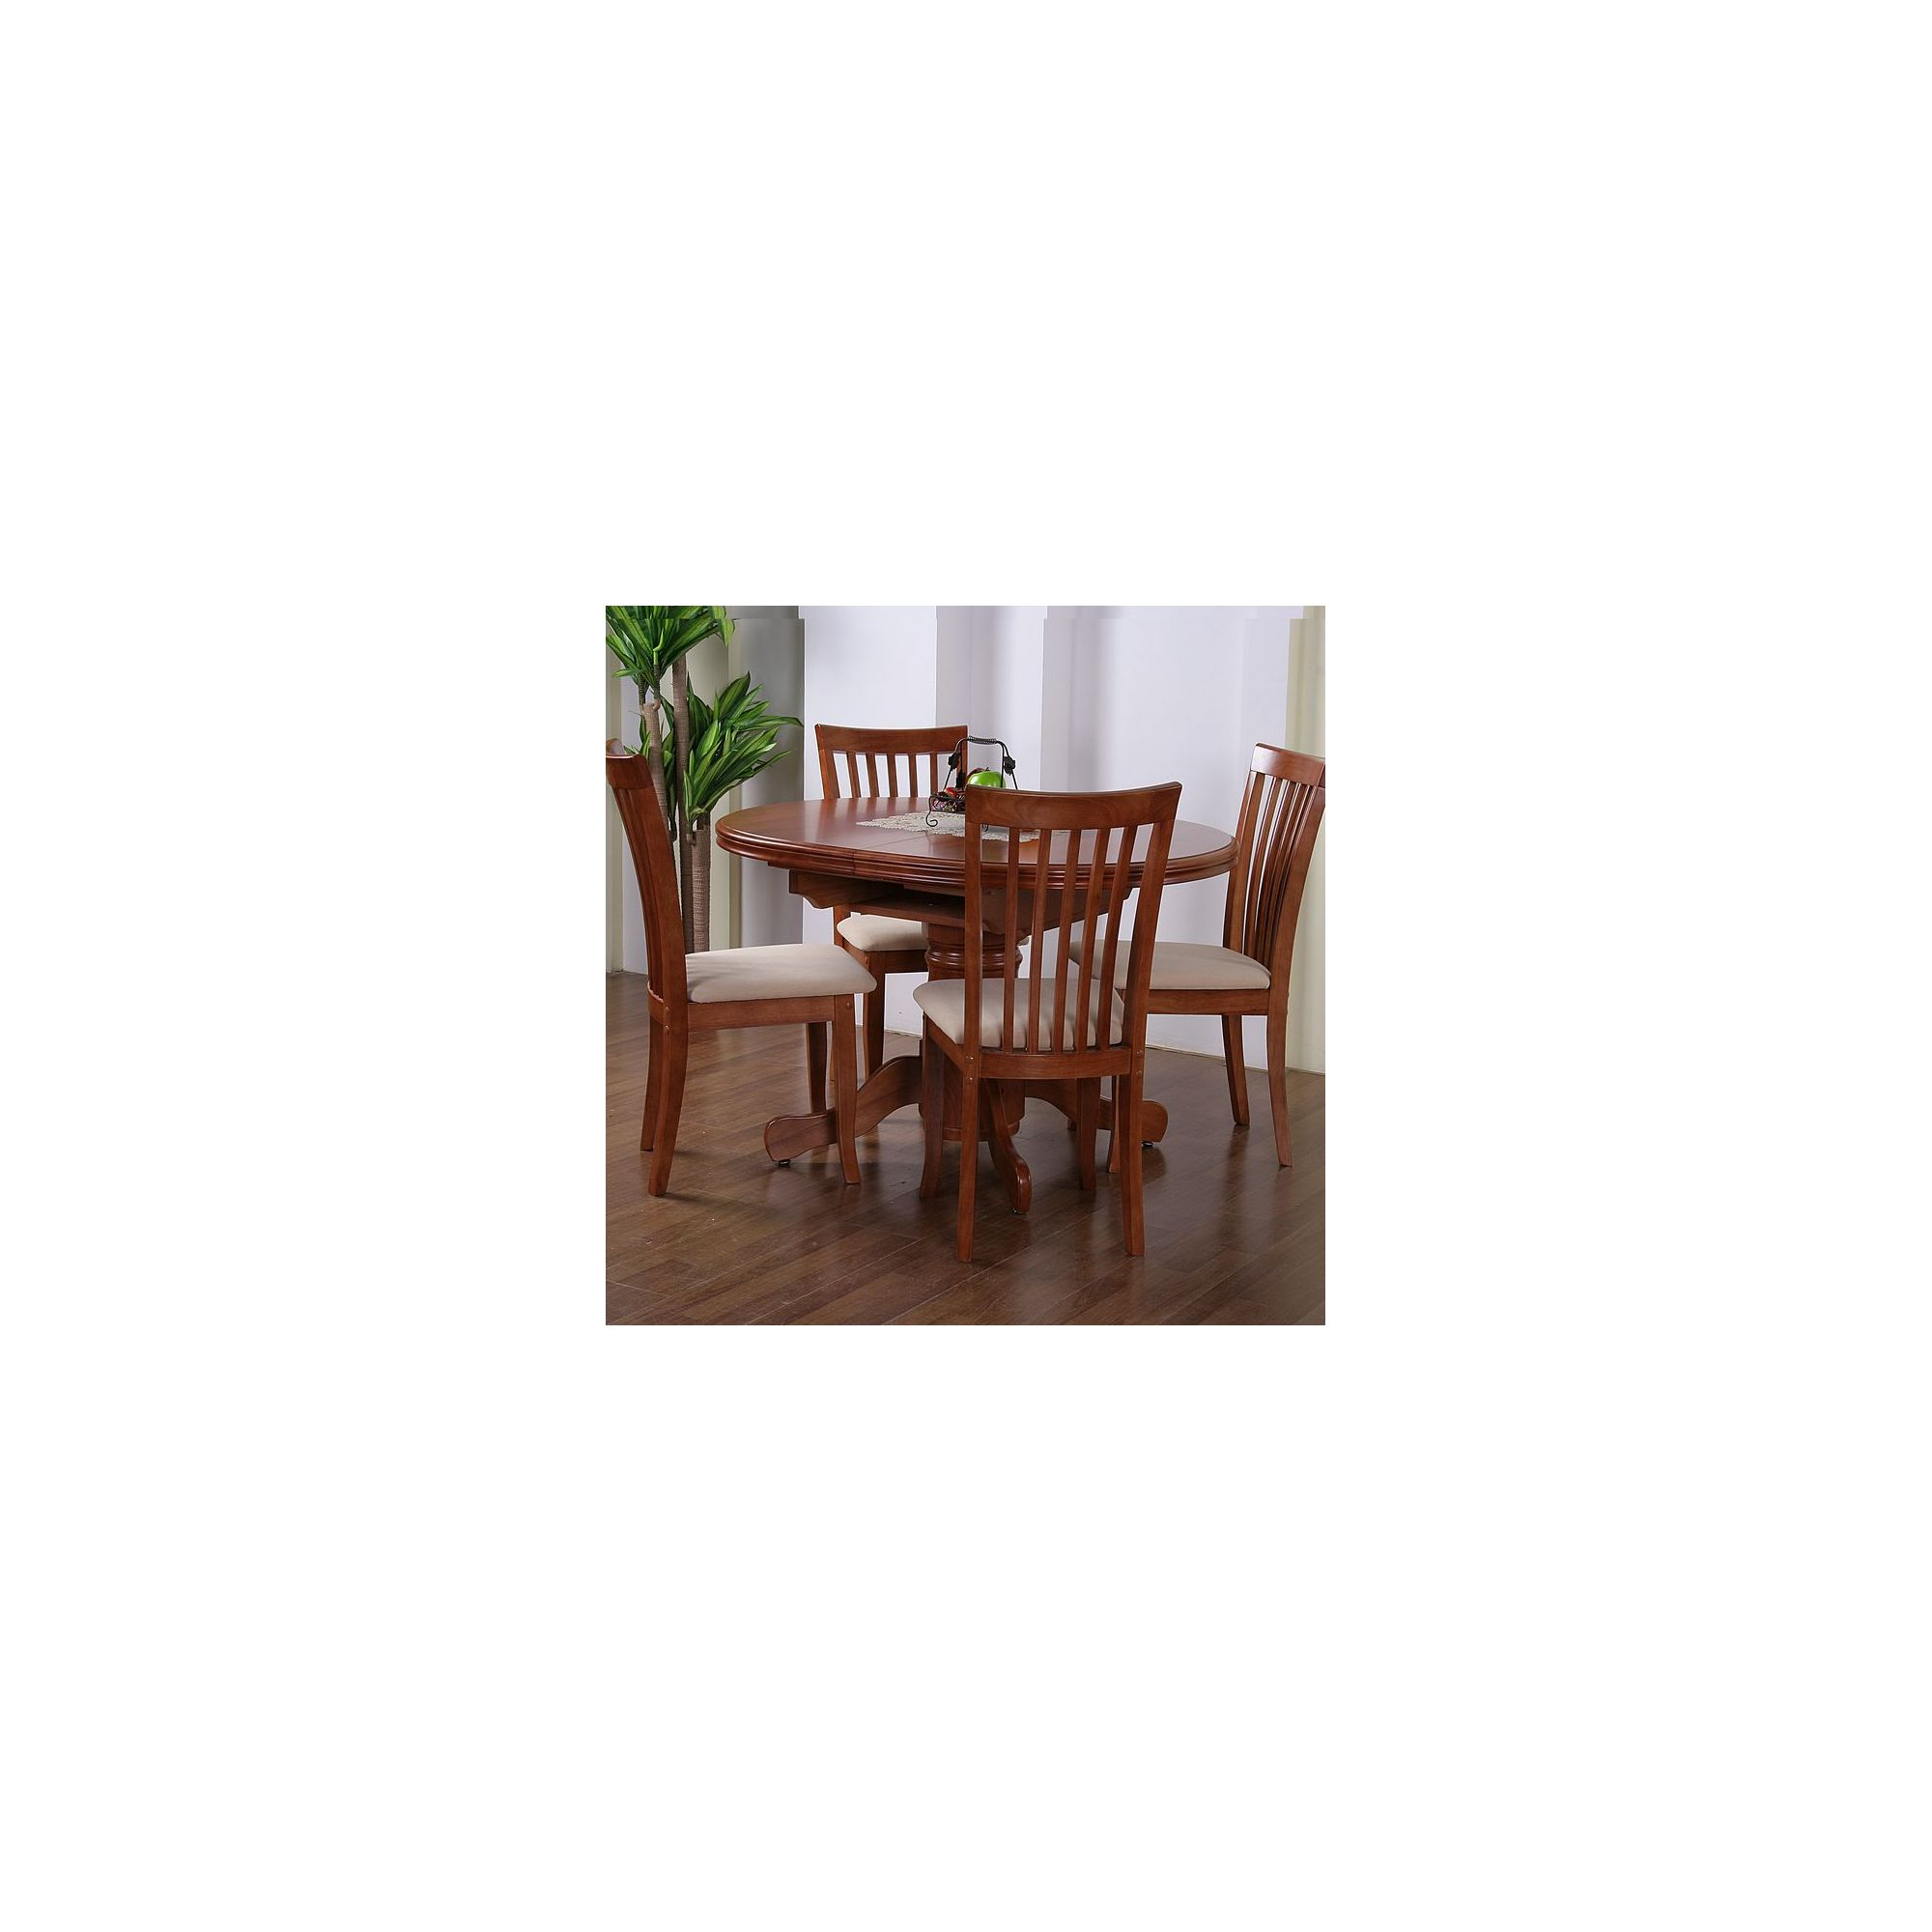 G&P Furniture Windsor House 5-Piece Stratford Oval Flip Top Extending Dining Set - Cherry at Tesco Direct